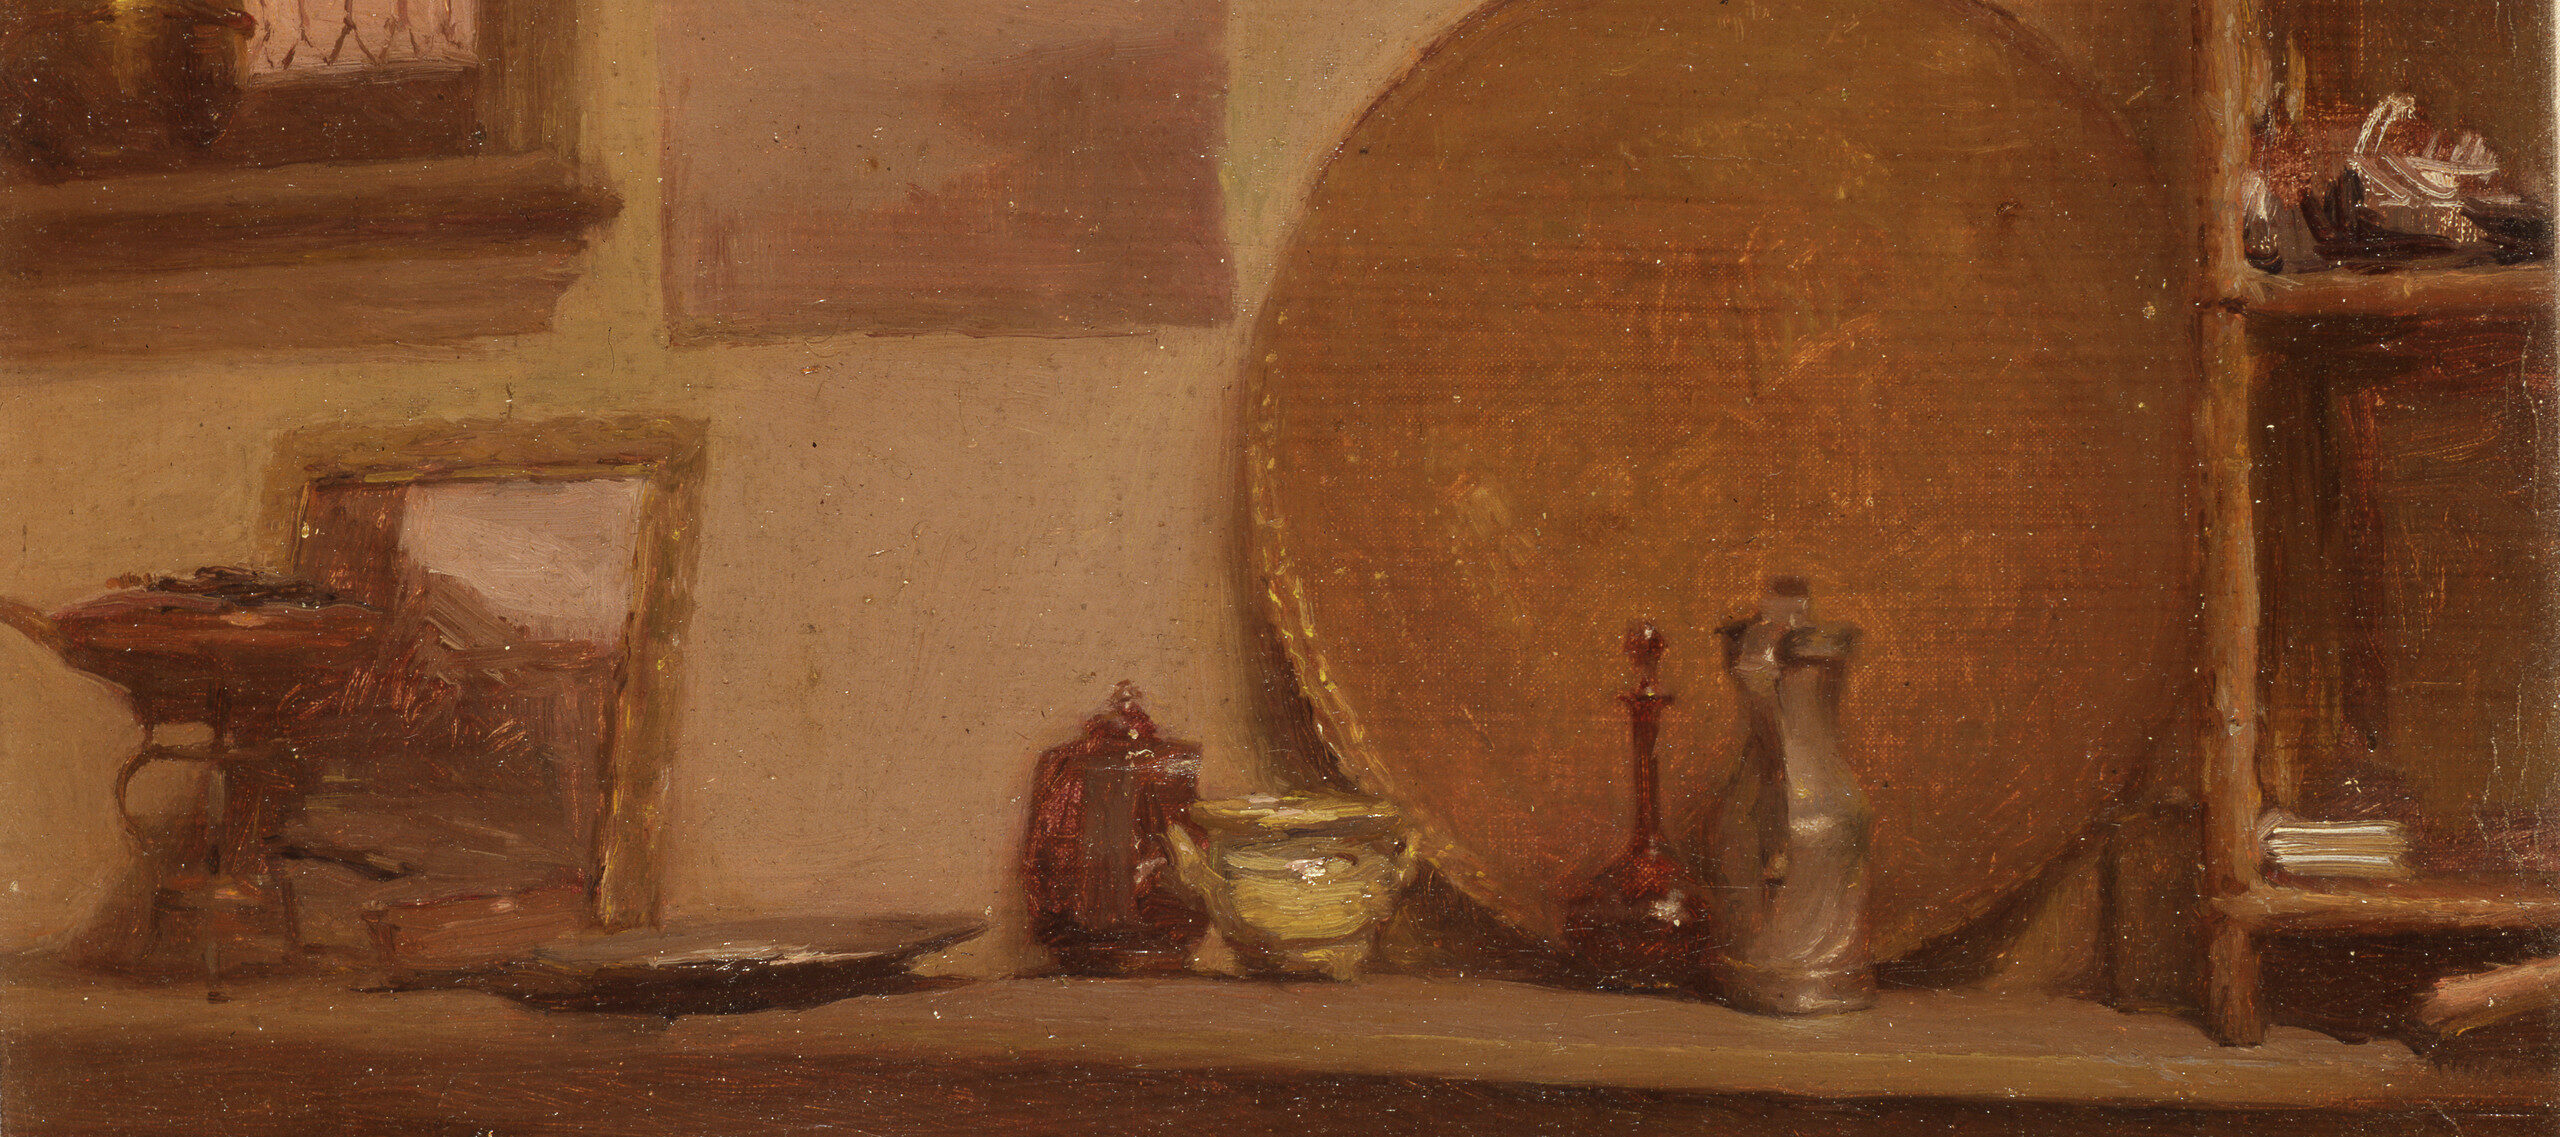 Six small vessels in red and gold tones and a small framed abstract painting sit on a table. Behind the vessels a large dark gold tray rests against the wall next to a shelving unit with abstract forms on its two shelves. To the left of the tray are two unframed abstract paintings in pink tones hanging on the wall and a gold vase sits on a sill in front of the window in the top left corner of the painting.